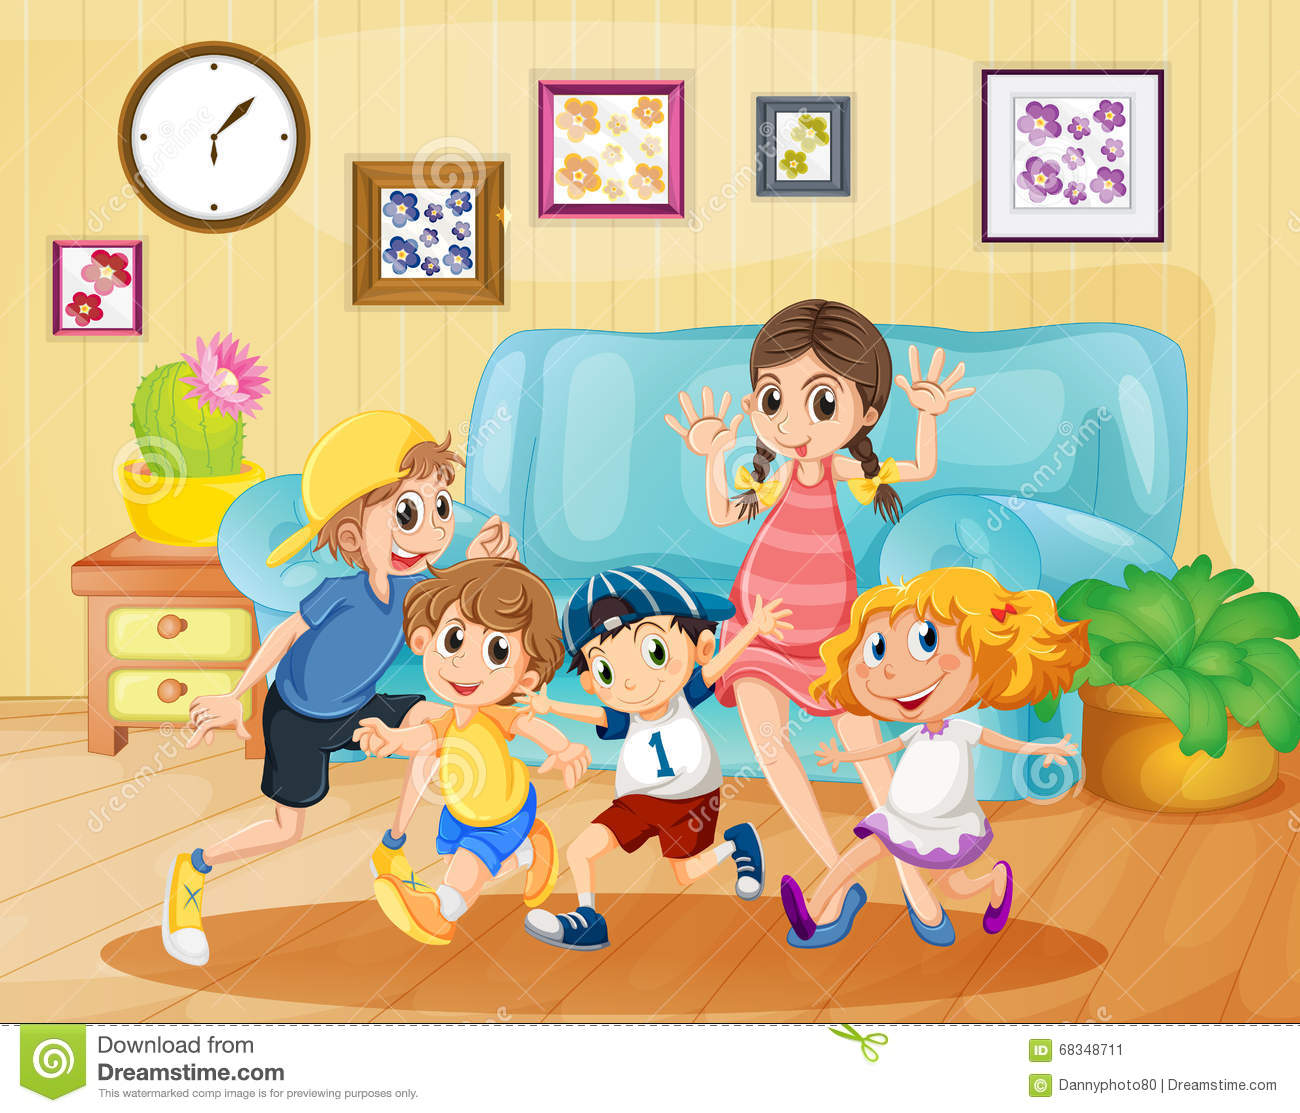 Living Room Clip Art: Children Playing In The Living Room Stock Vector